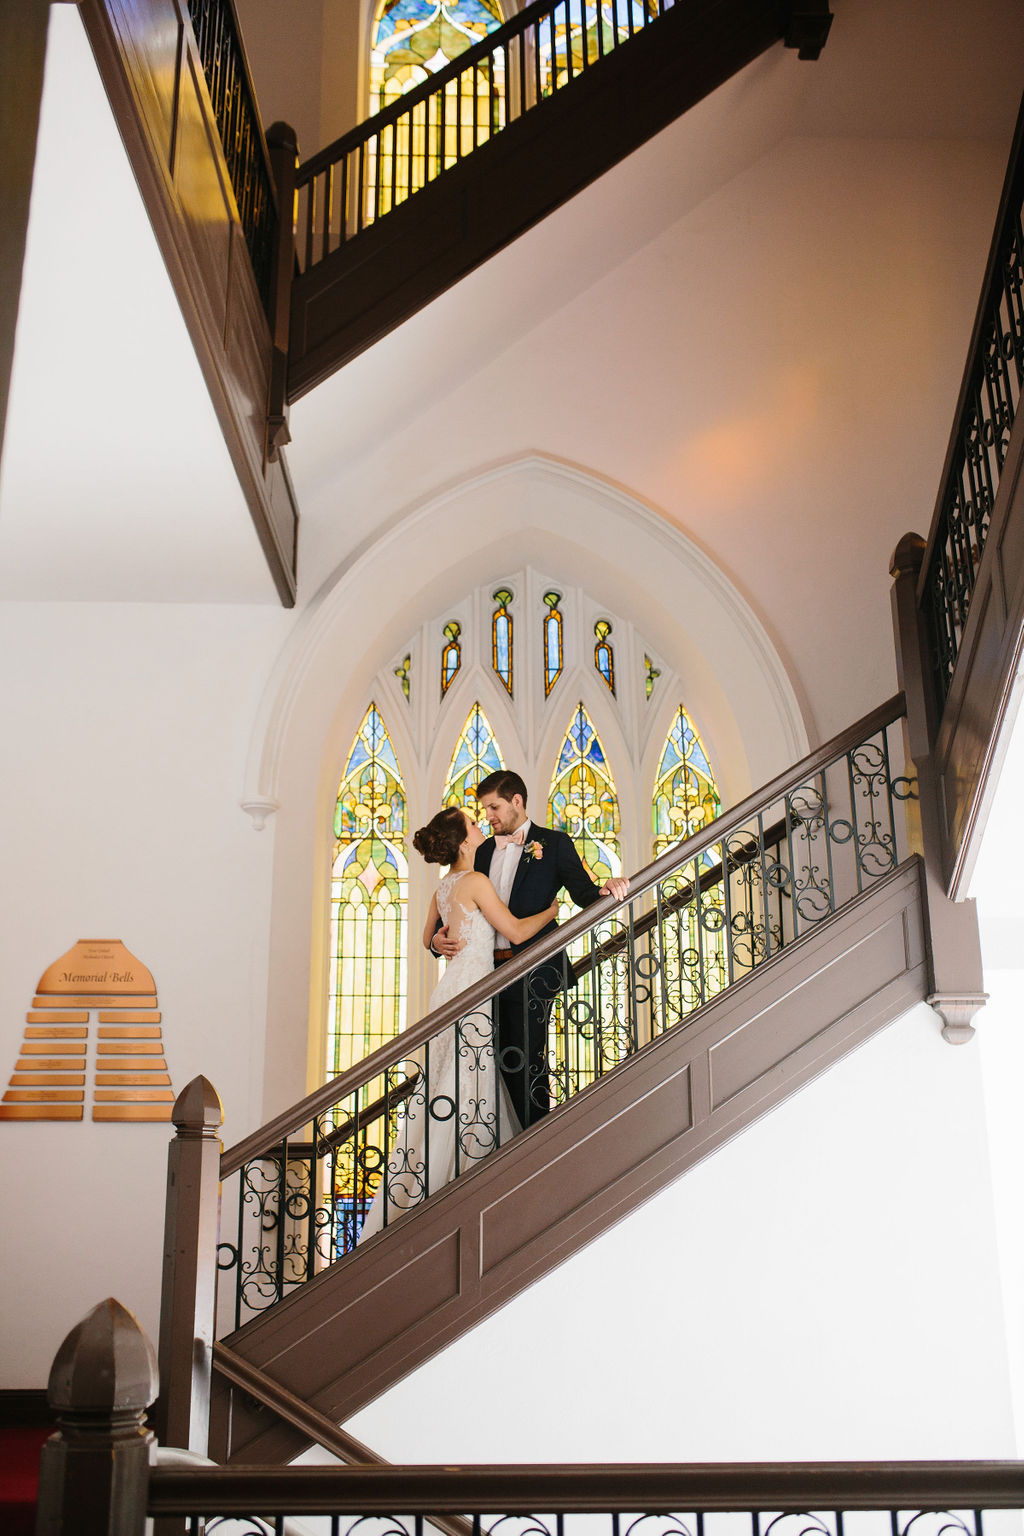 Traditional Church Bride and Groom on Staircase Wedding Portrait | St. Petersburg Wedding Venue First United Methodist Church